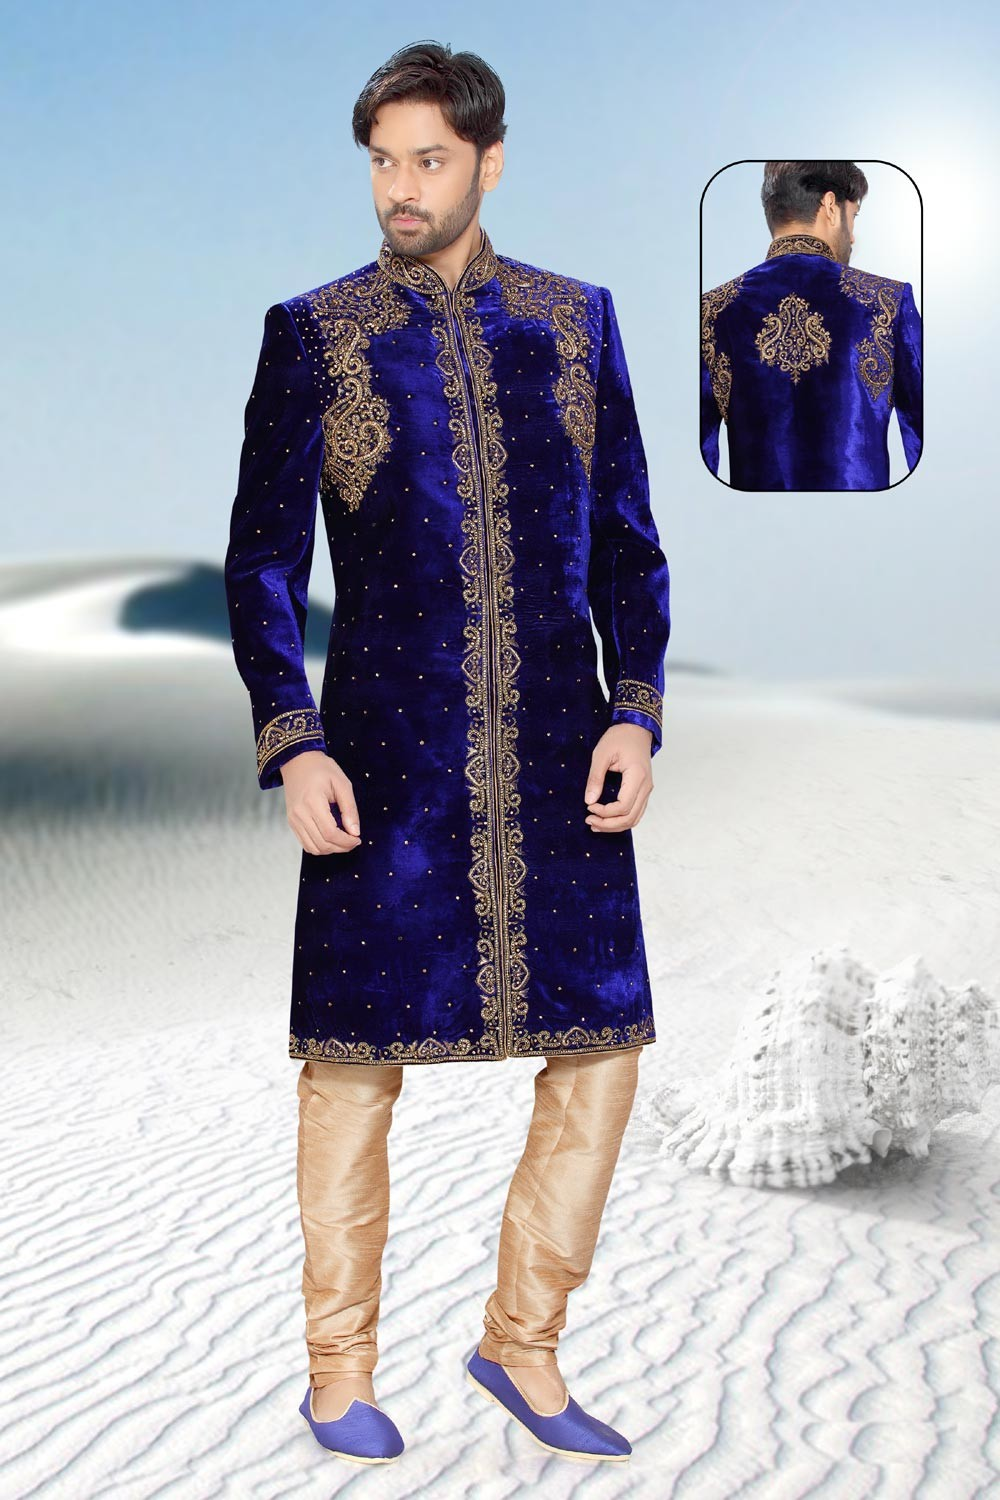 Blue velvet Indian mens sherwani